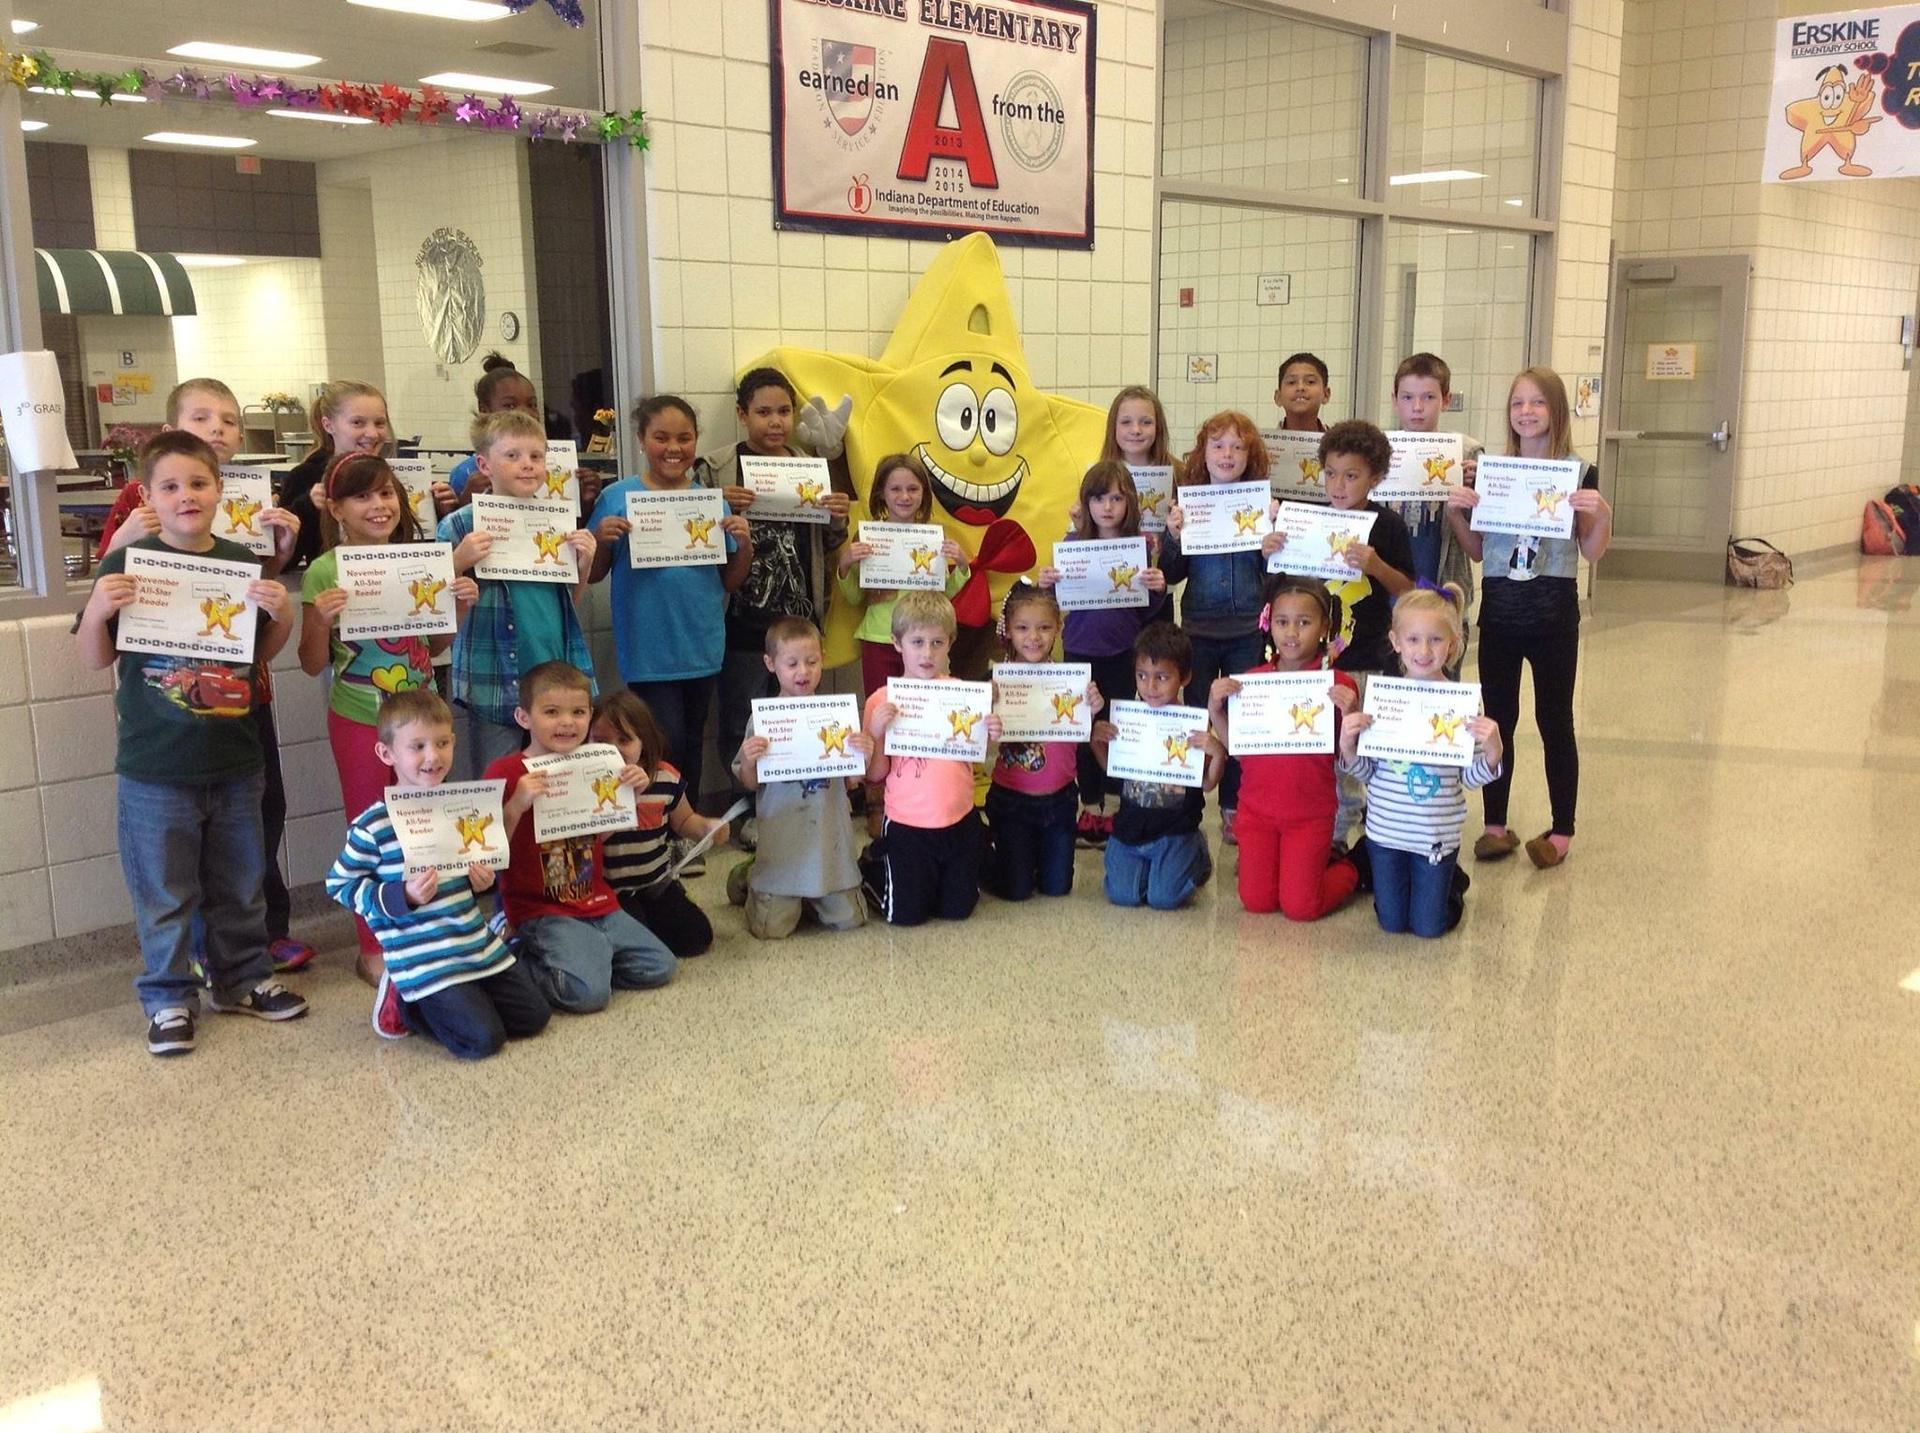 Students excel in elementary school